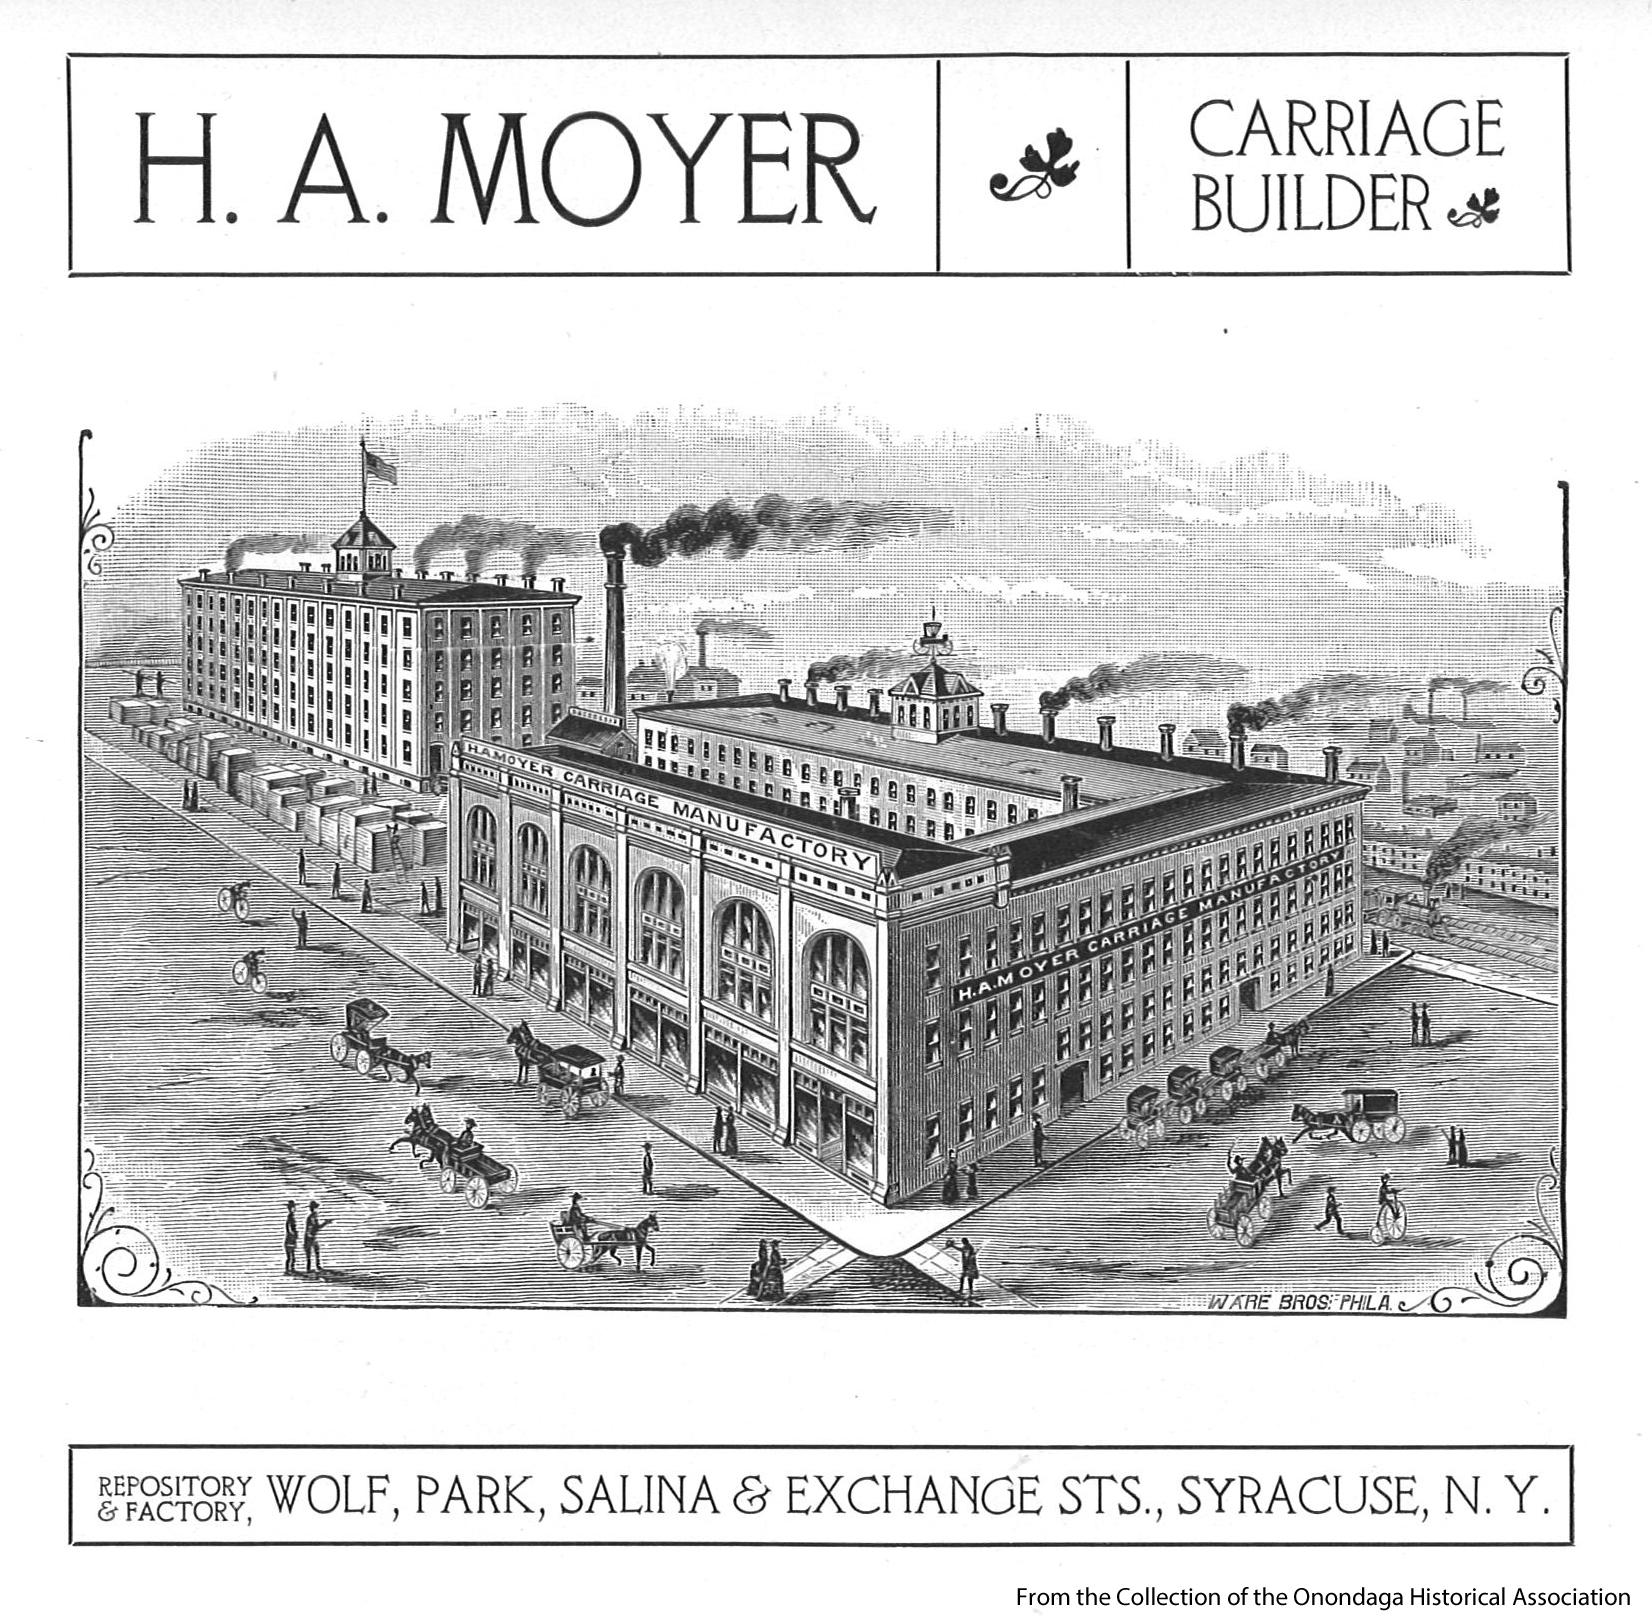 The complex was built in{&amp;nbsp;}1895 to house the H.A. Hoyer Carriage Company. Here is an early postcard. (Onondaga Historical Association.){&amp;nbsp;}<p></p>